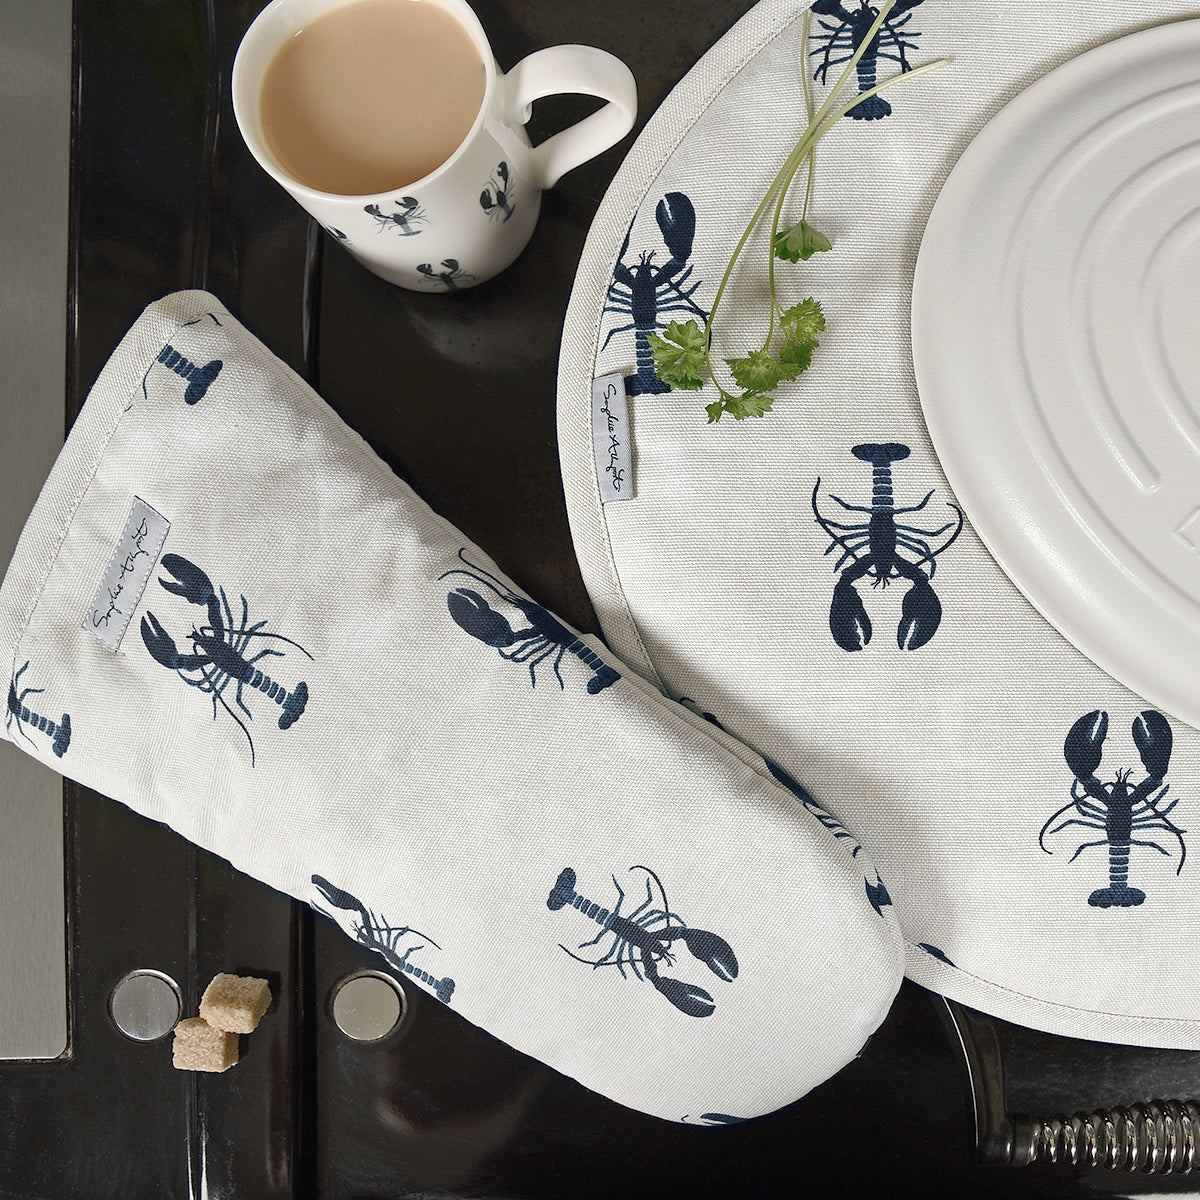 Dune White Lobster Oven Mitt by Sophie Allport